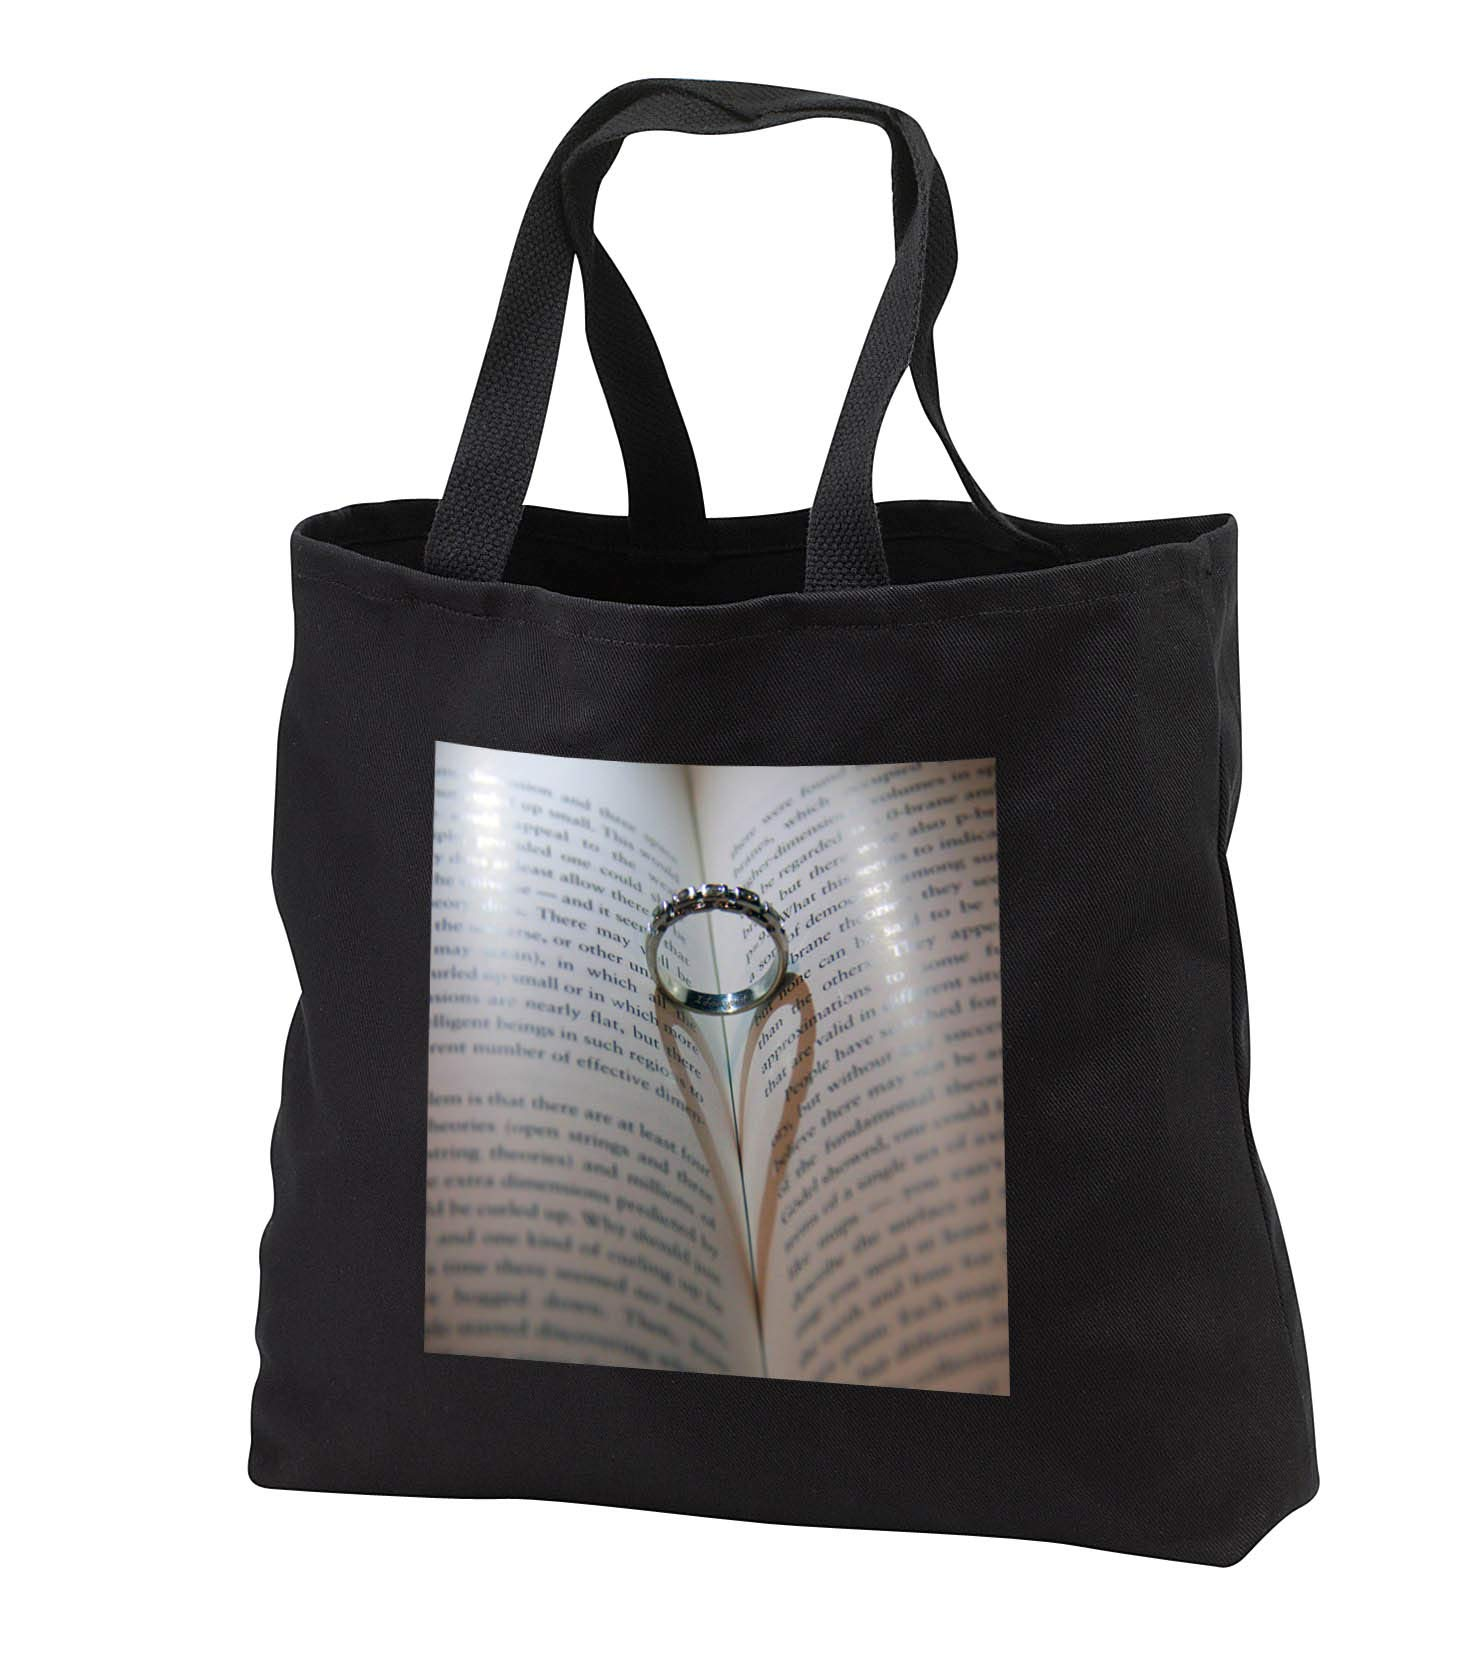 Stamp City - miscellaneous - Photograph of a wedding ring in book where its shadow created a heart. - Tote Bags - Black Tote Bag JUMBO 20w x 15h x 5d (tb_292976_3)